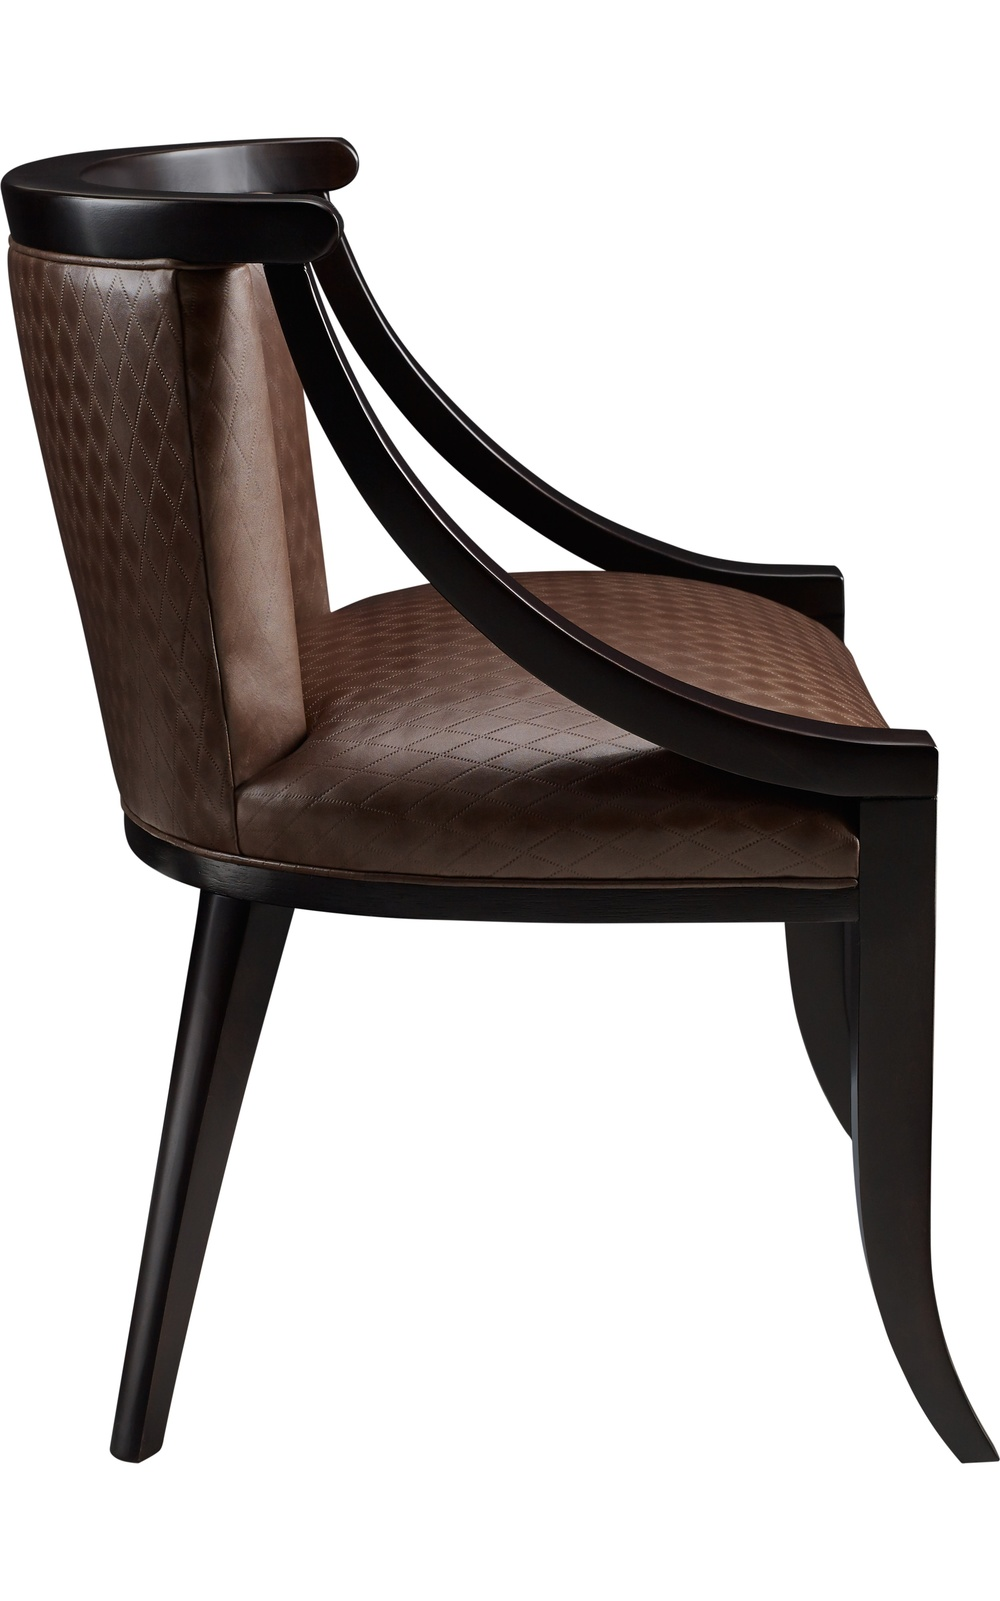 Hickory Chair - Lafayette Chair